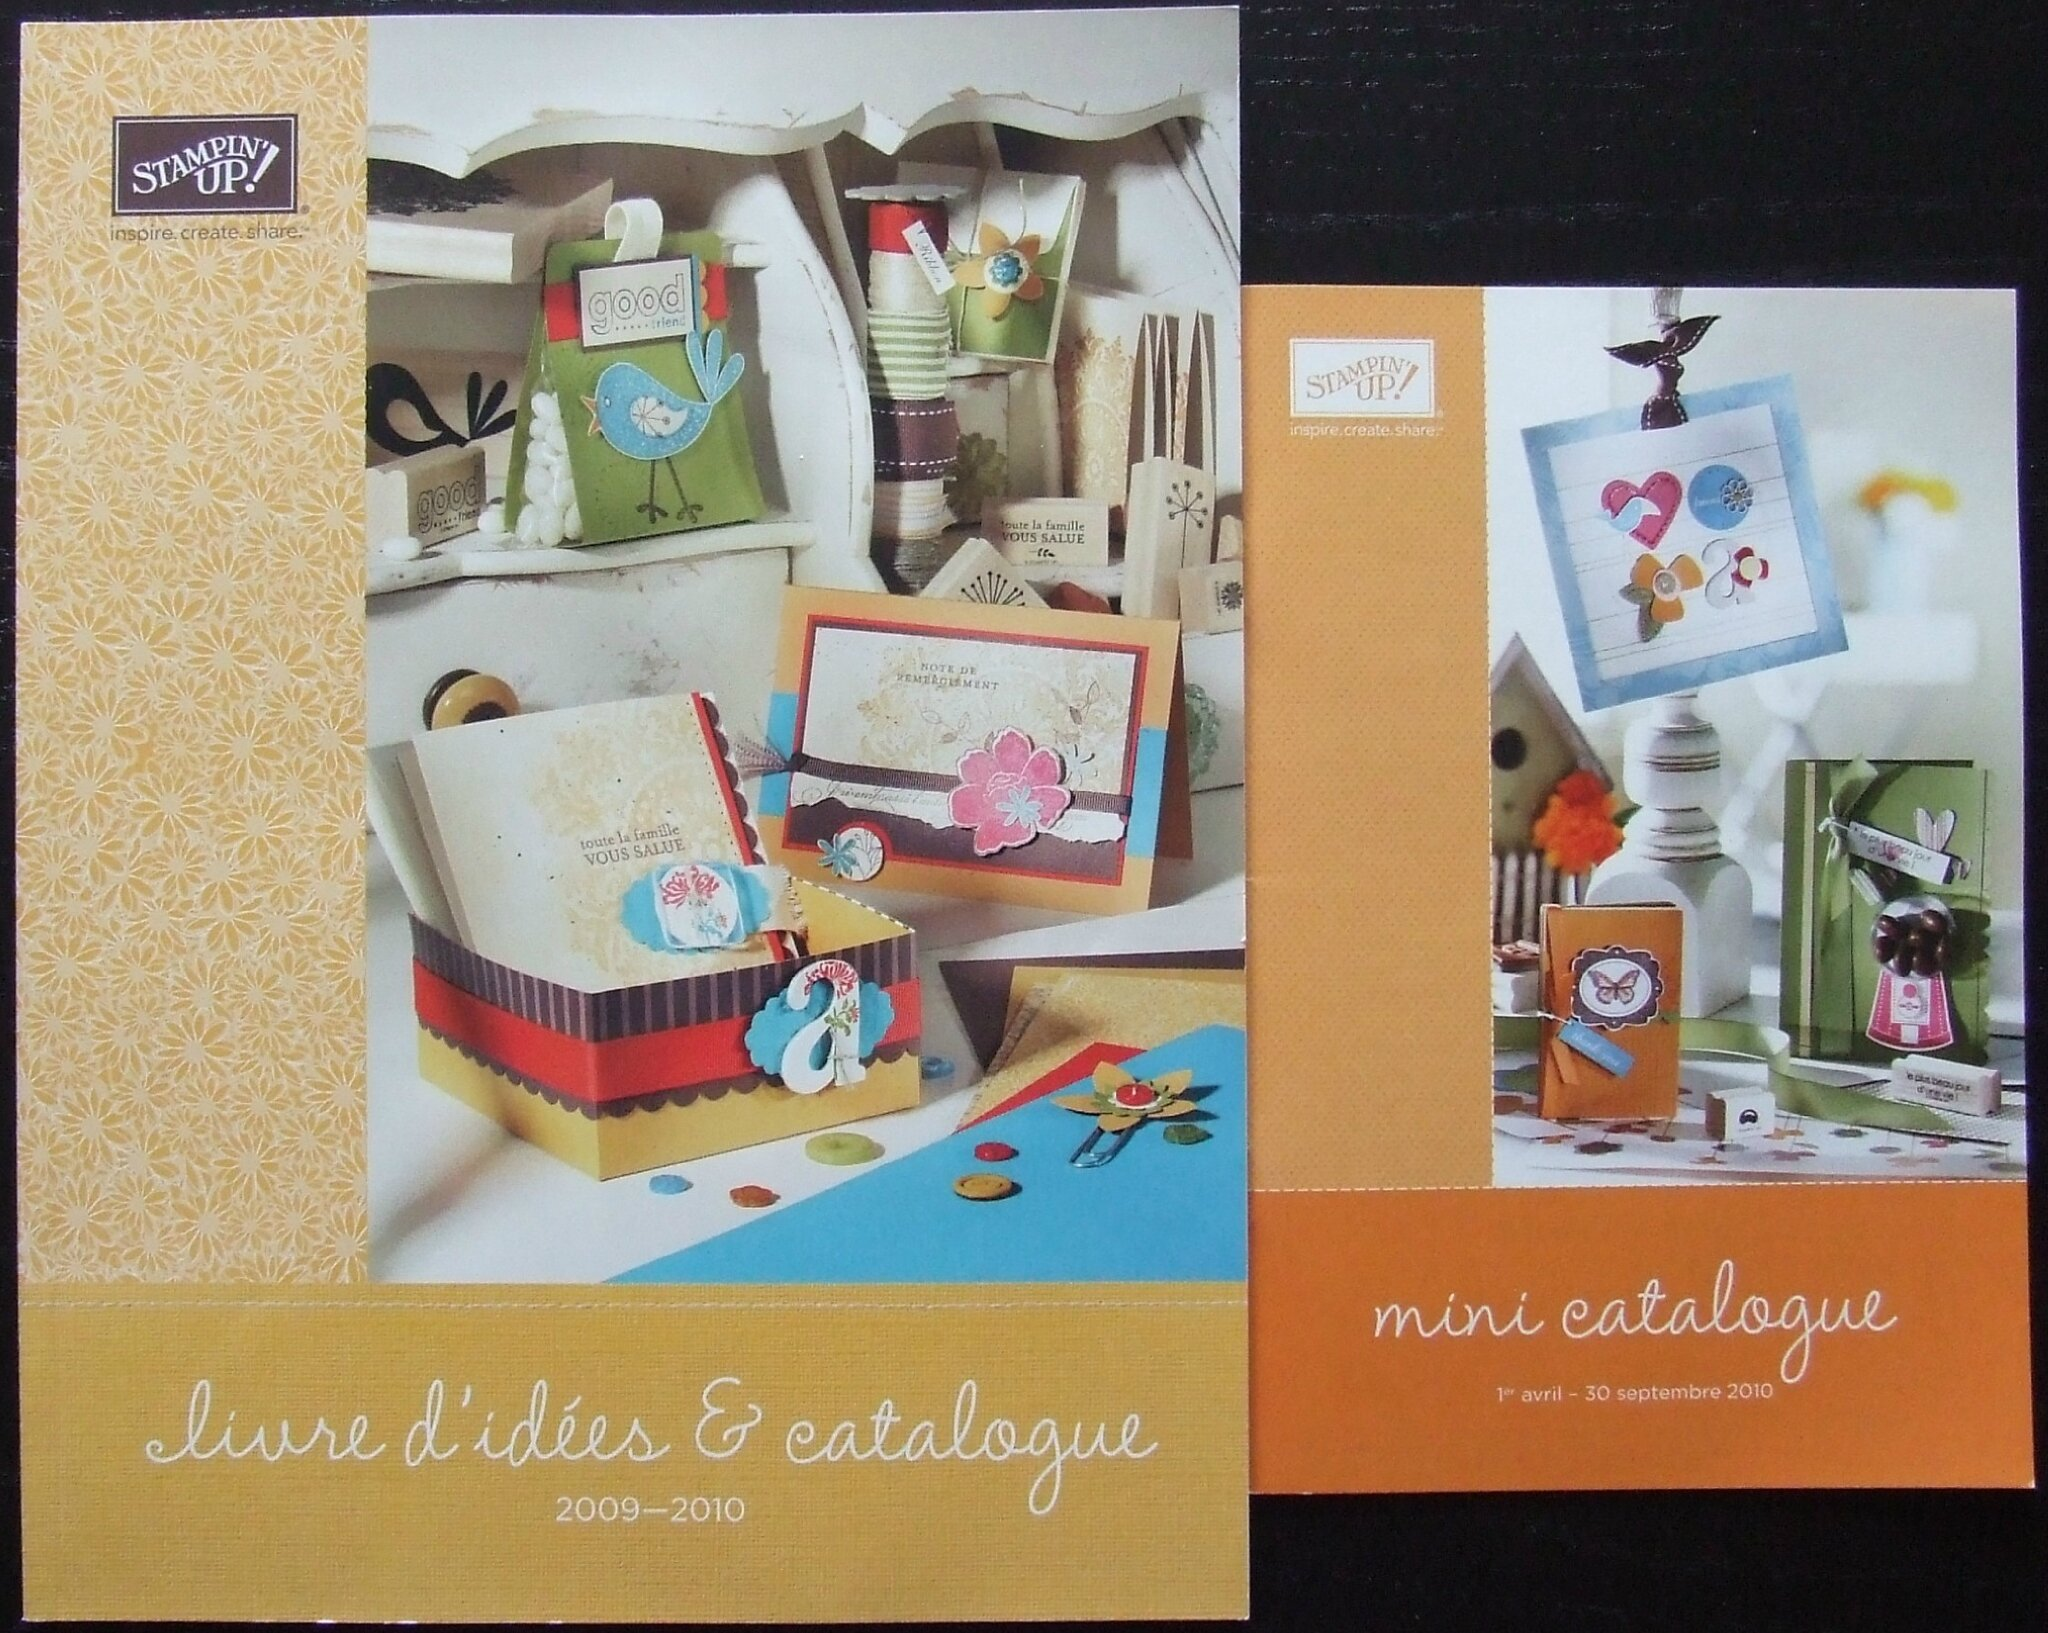 SU catalogues 09-10